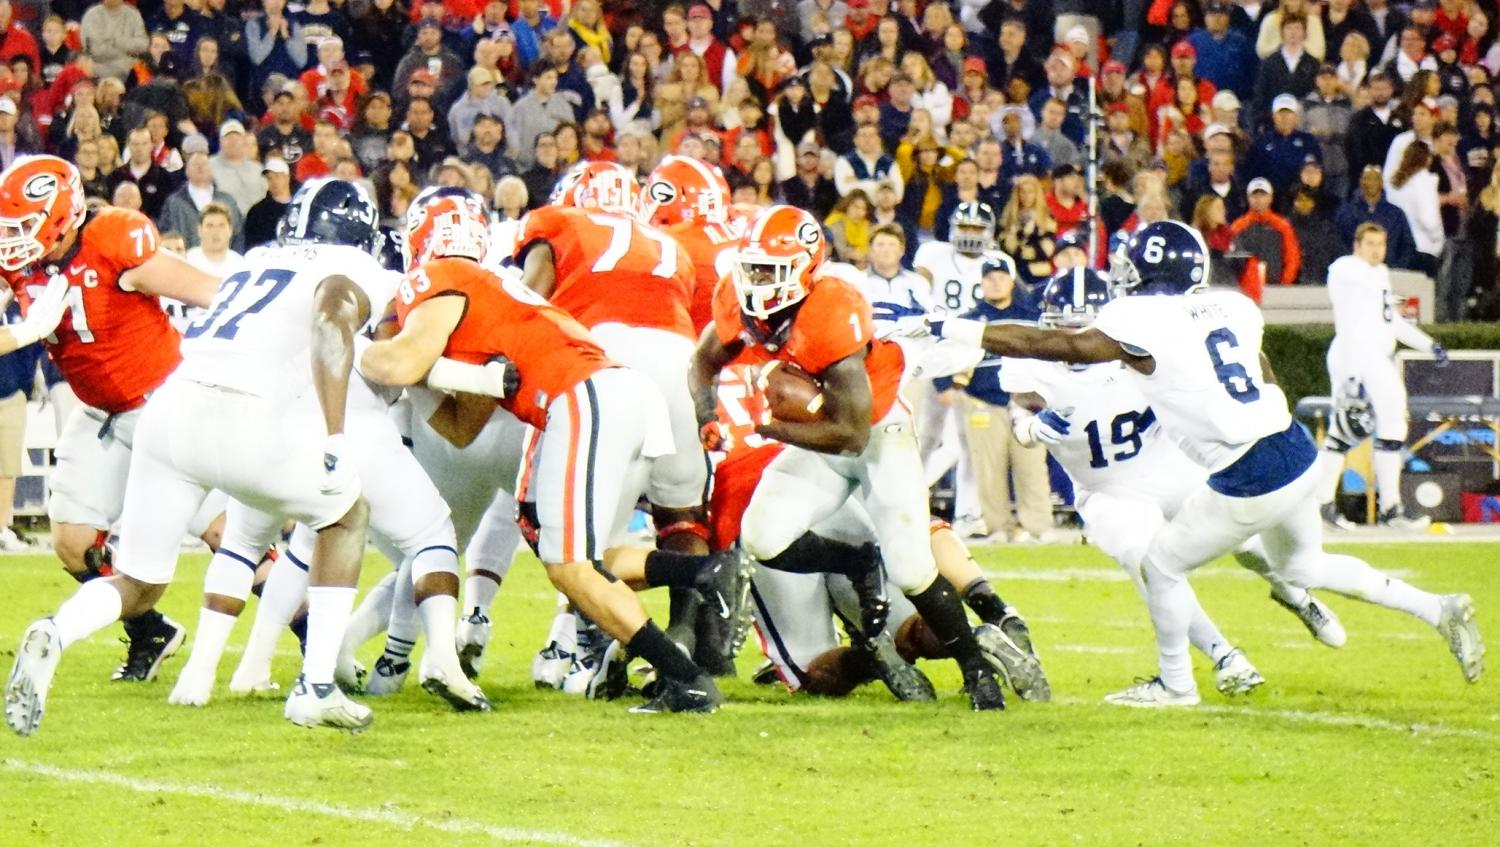 Sony Michel 2nd half GA Southern game 21-Nov-2015 (Photo by Bulldawg Illustrated's Greg Poole)